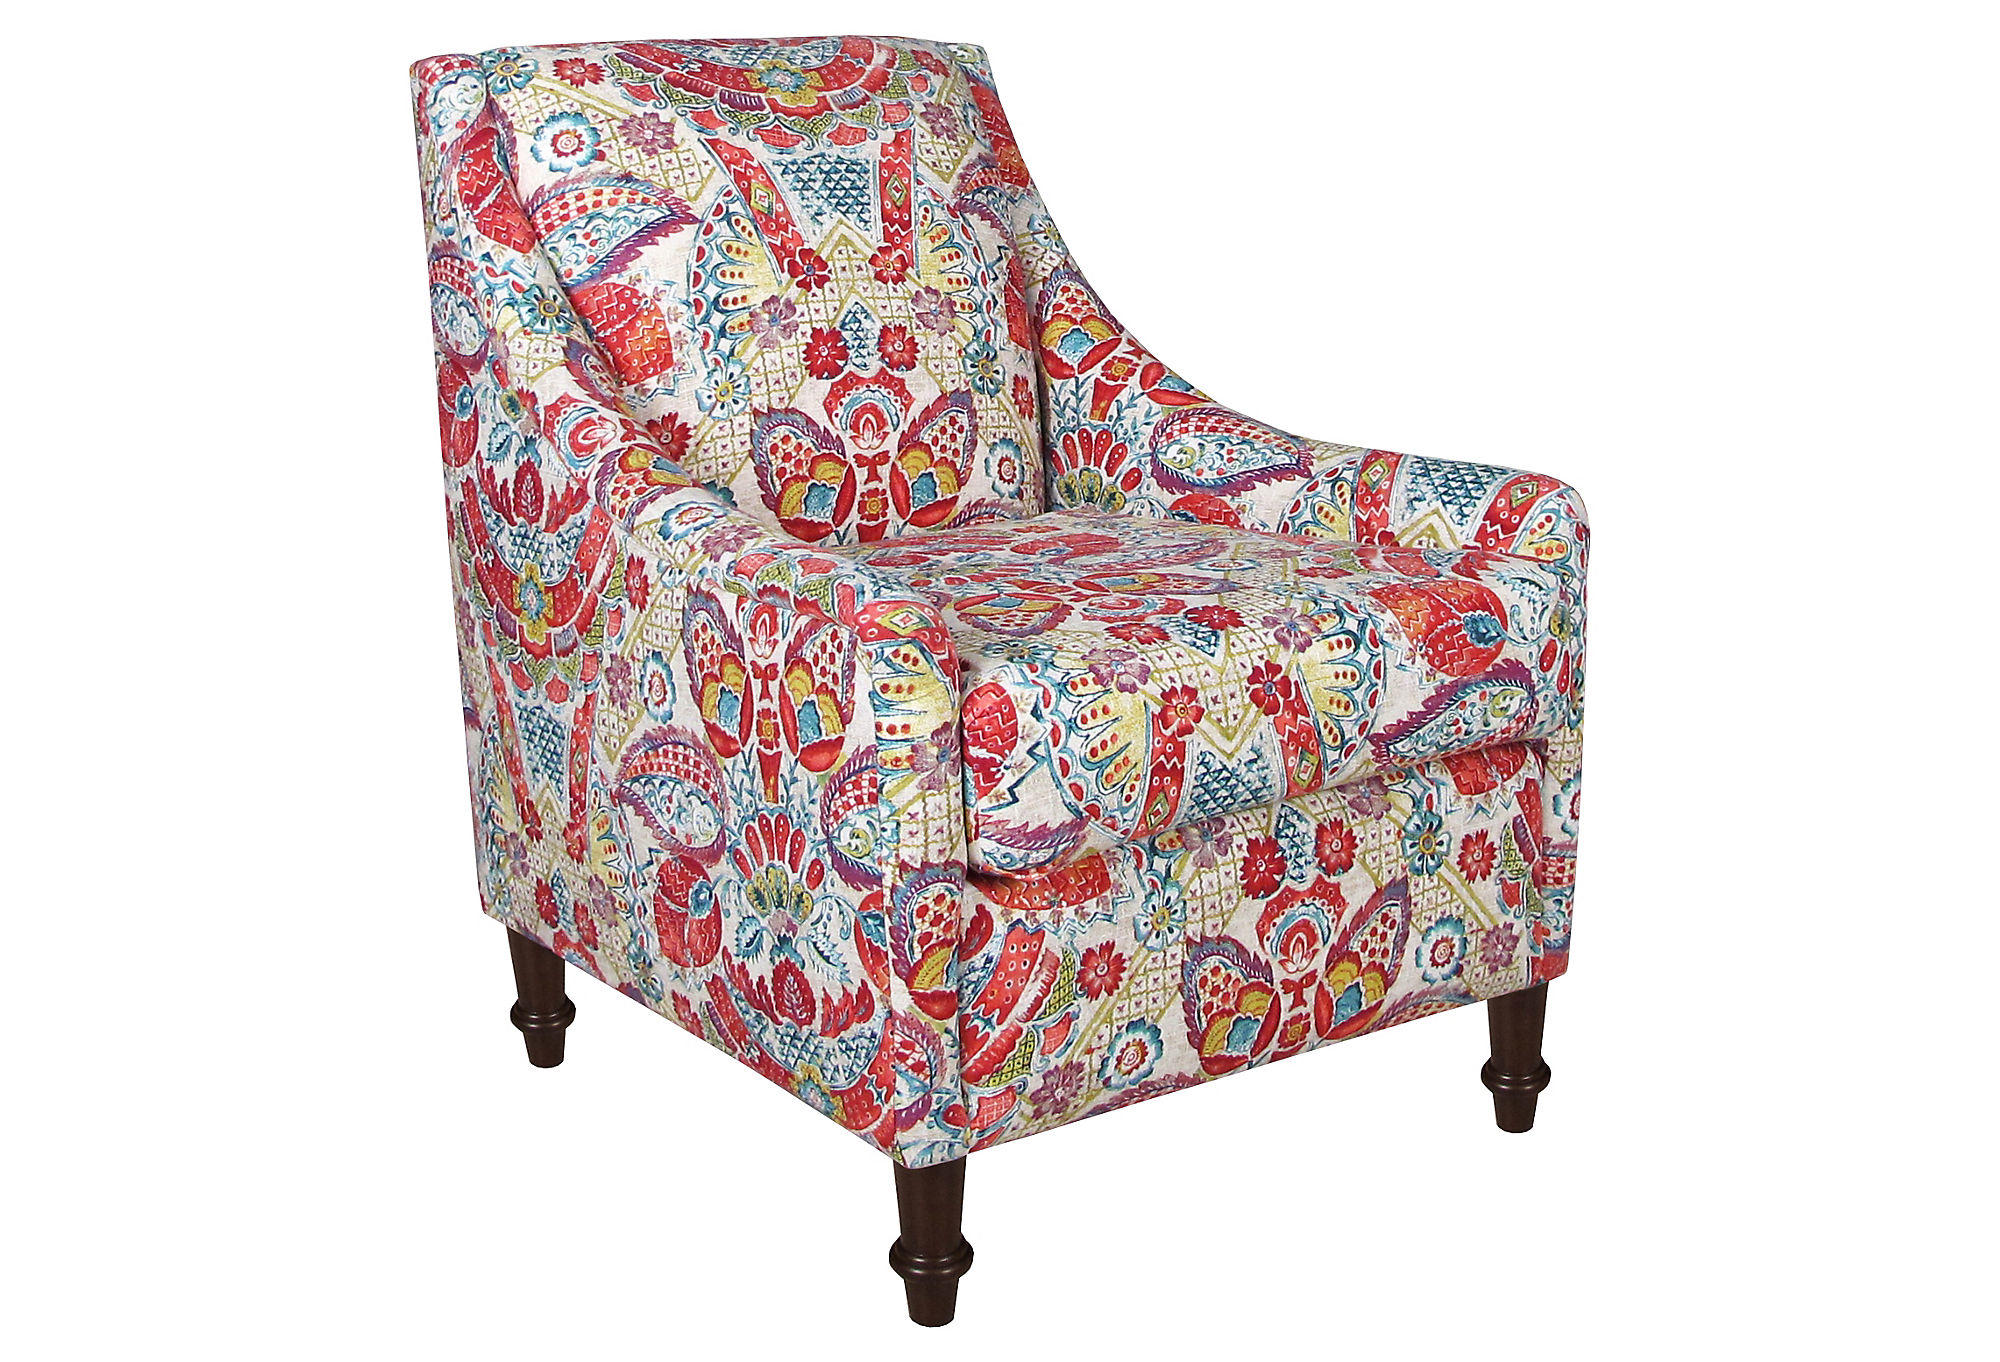 Holmes Swoop Arm Chair Red Multi Floral From One Kings Lane